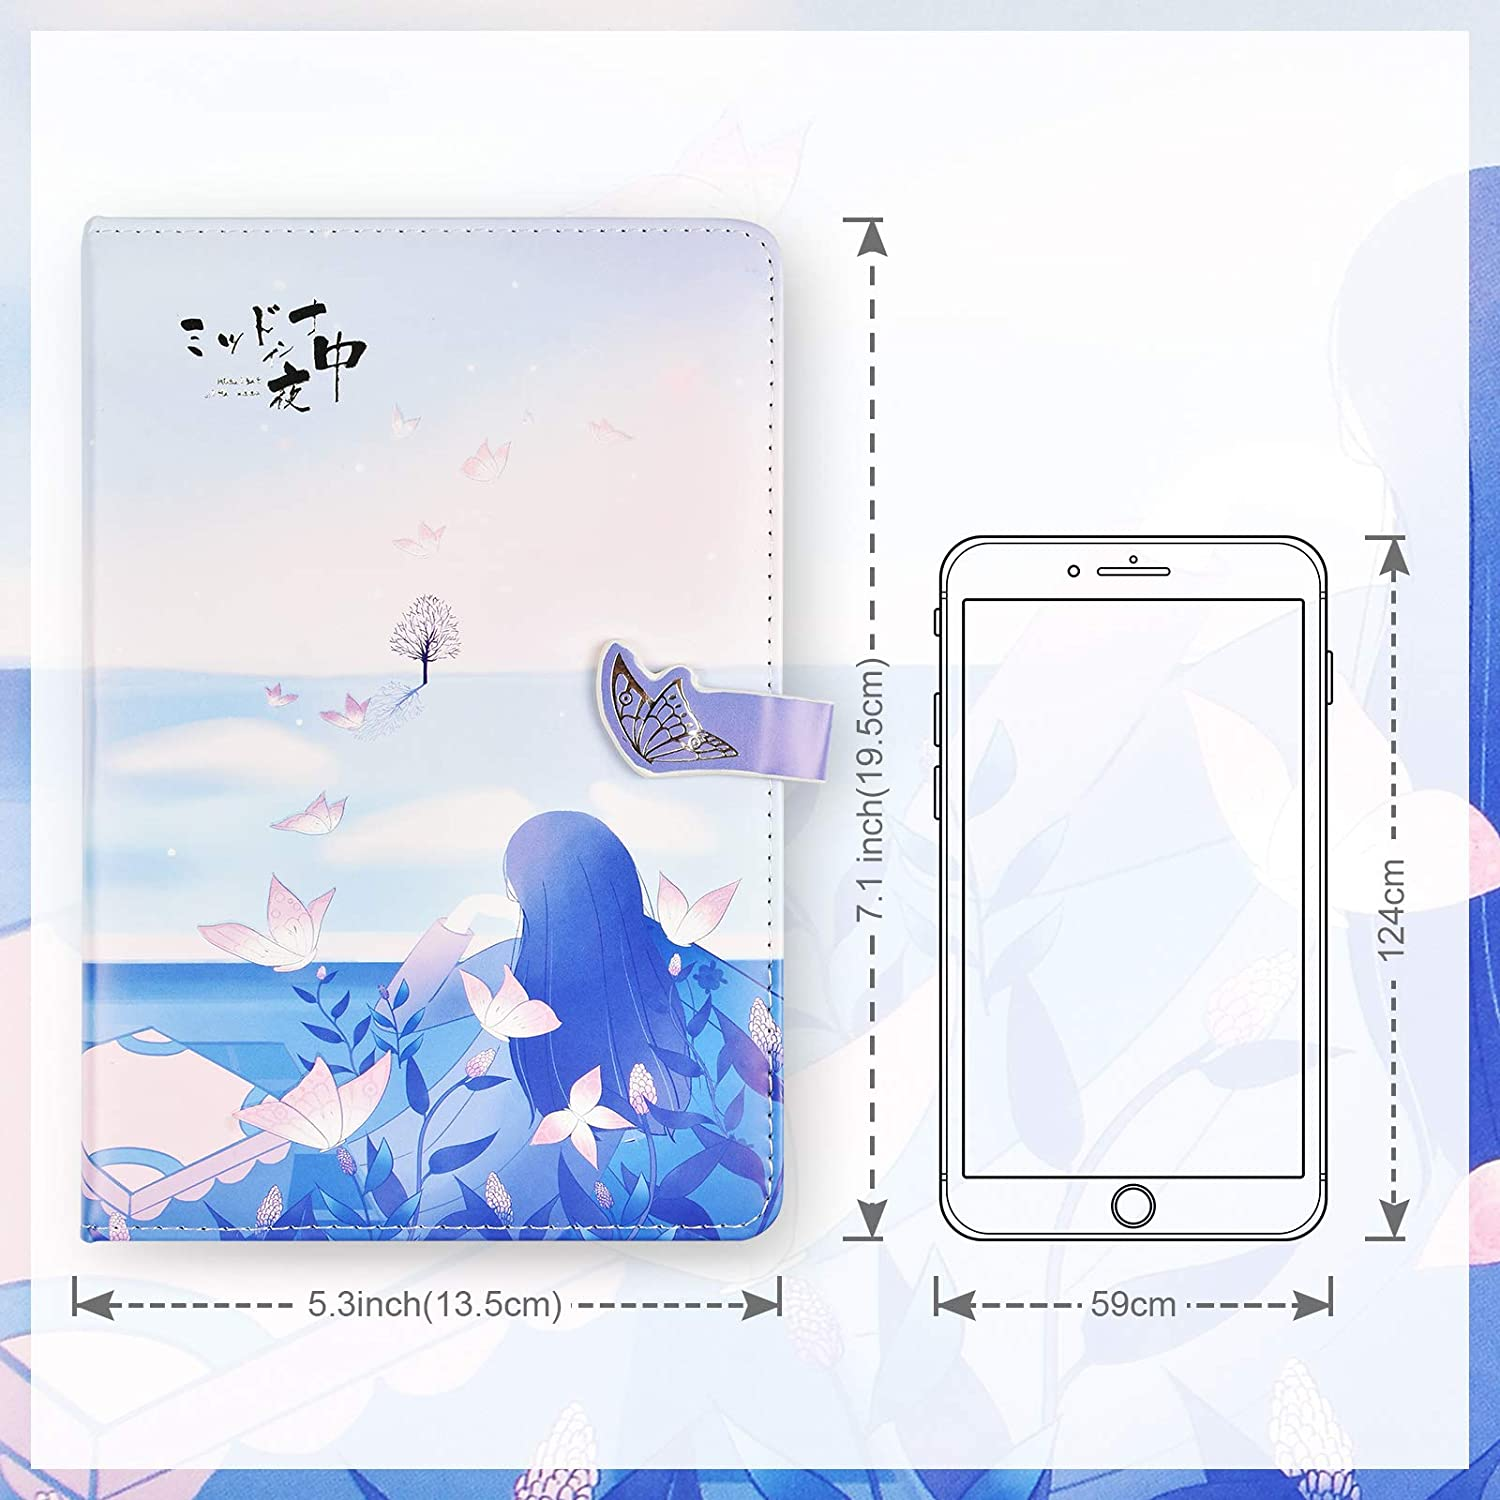 Art Sketchbook 258 Pages (Light blue /& girl) Gift for women Girls Hardcover Notebooks Personal Diary PU Leather Colorful Blank Writing Journal for Women Beautiful Journal to Write in